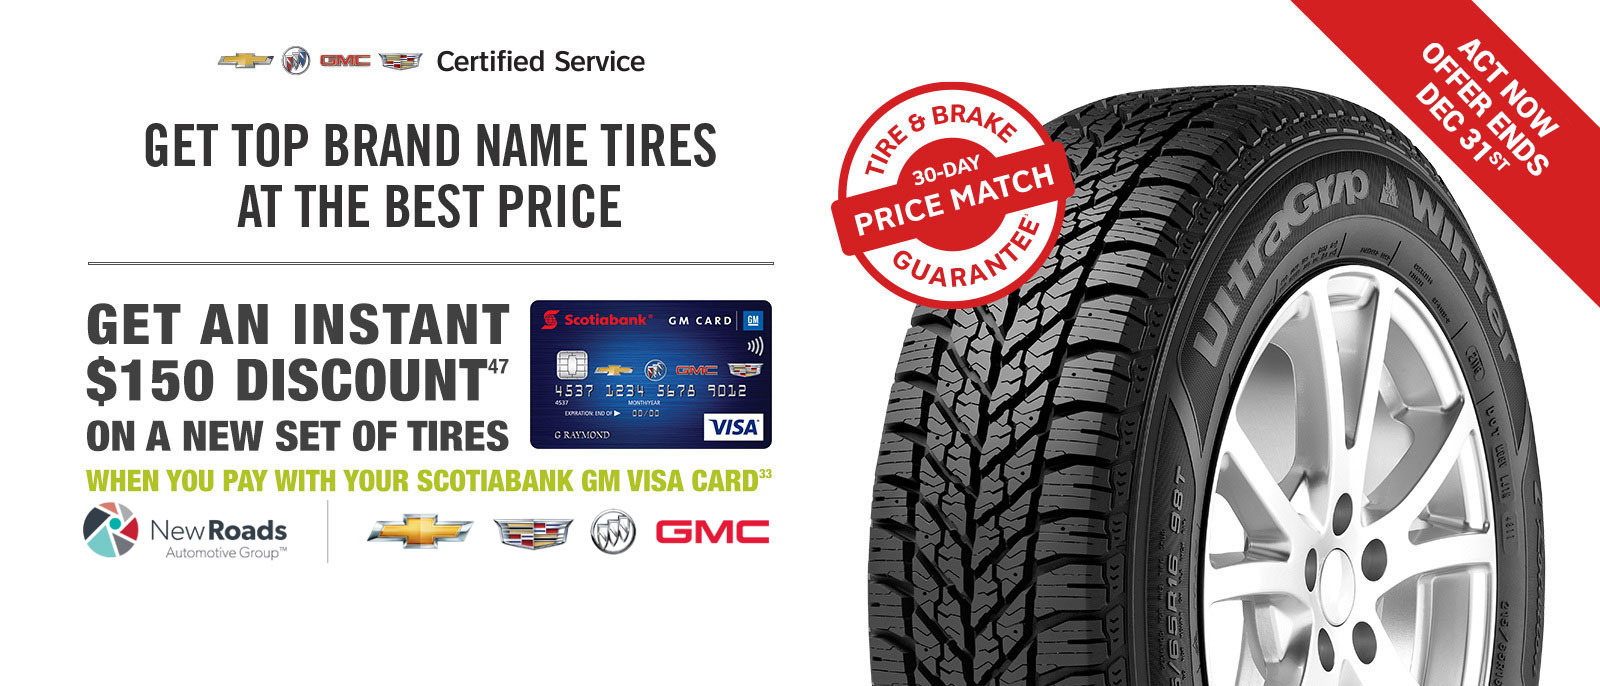 GM Certified Service in Newmarket